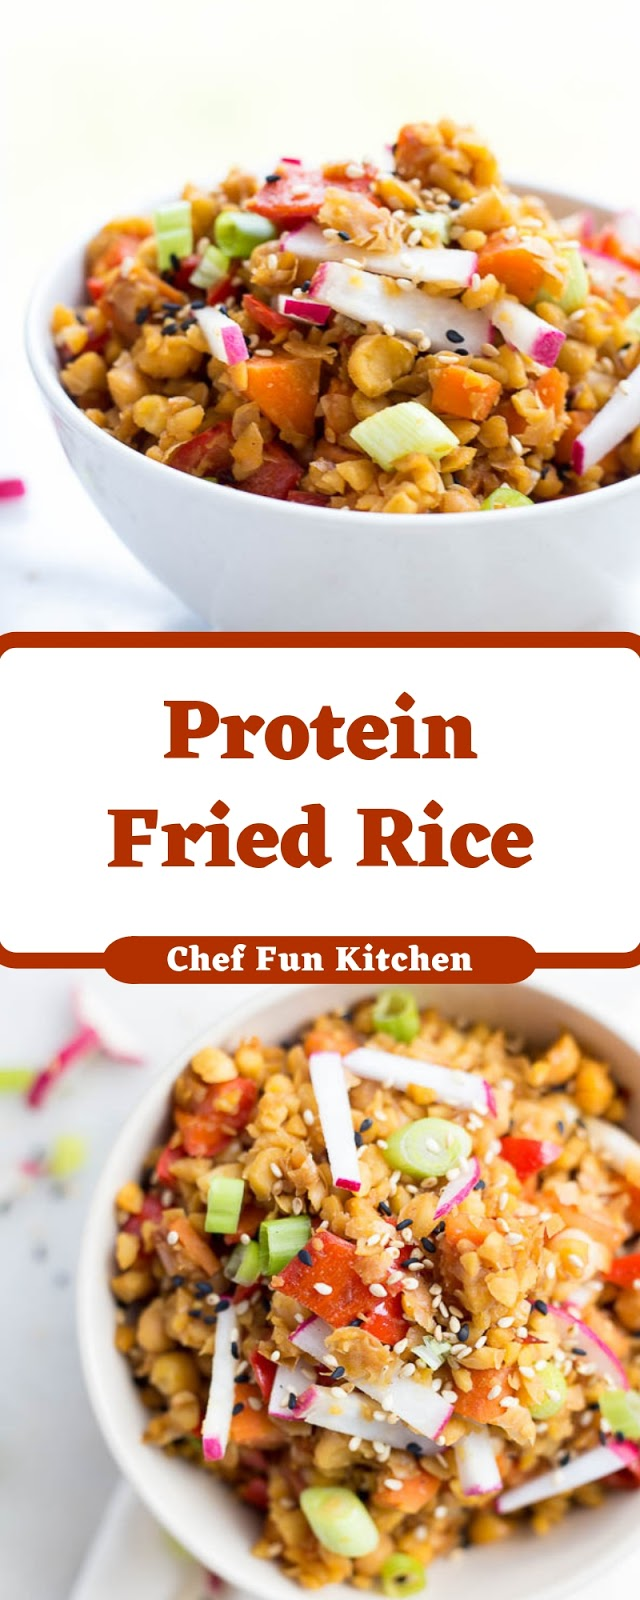 Protein Fried Rice